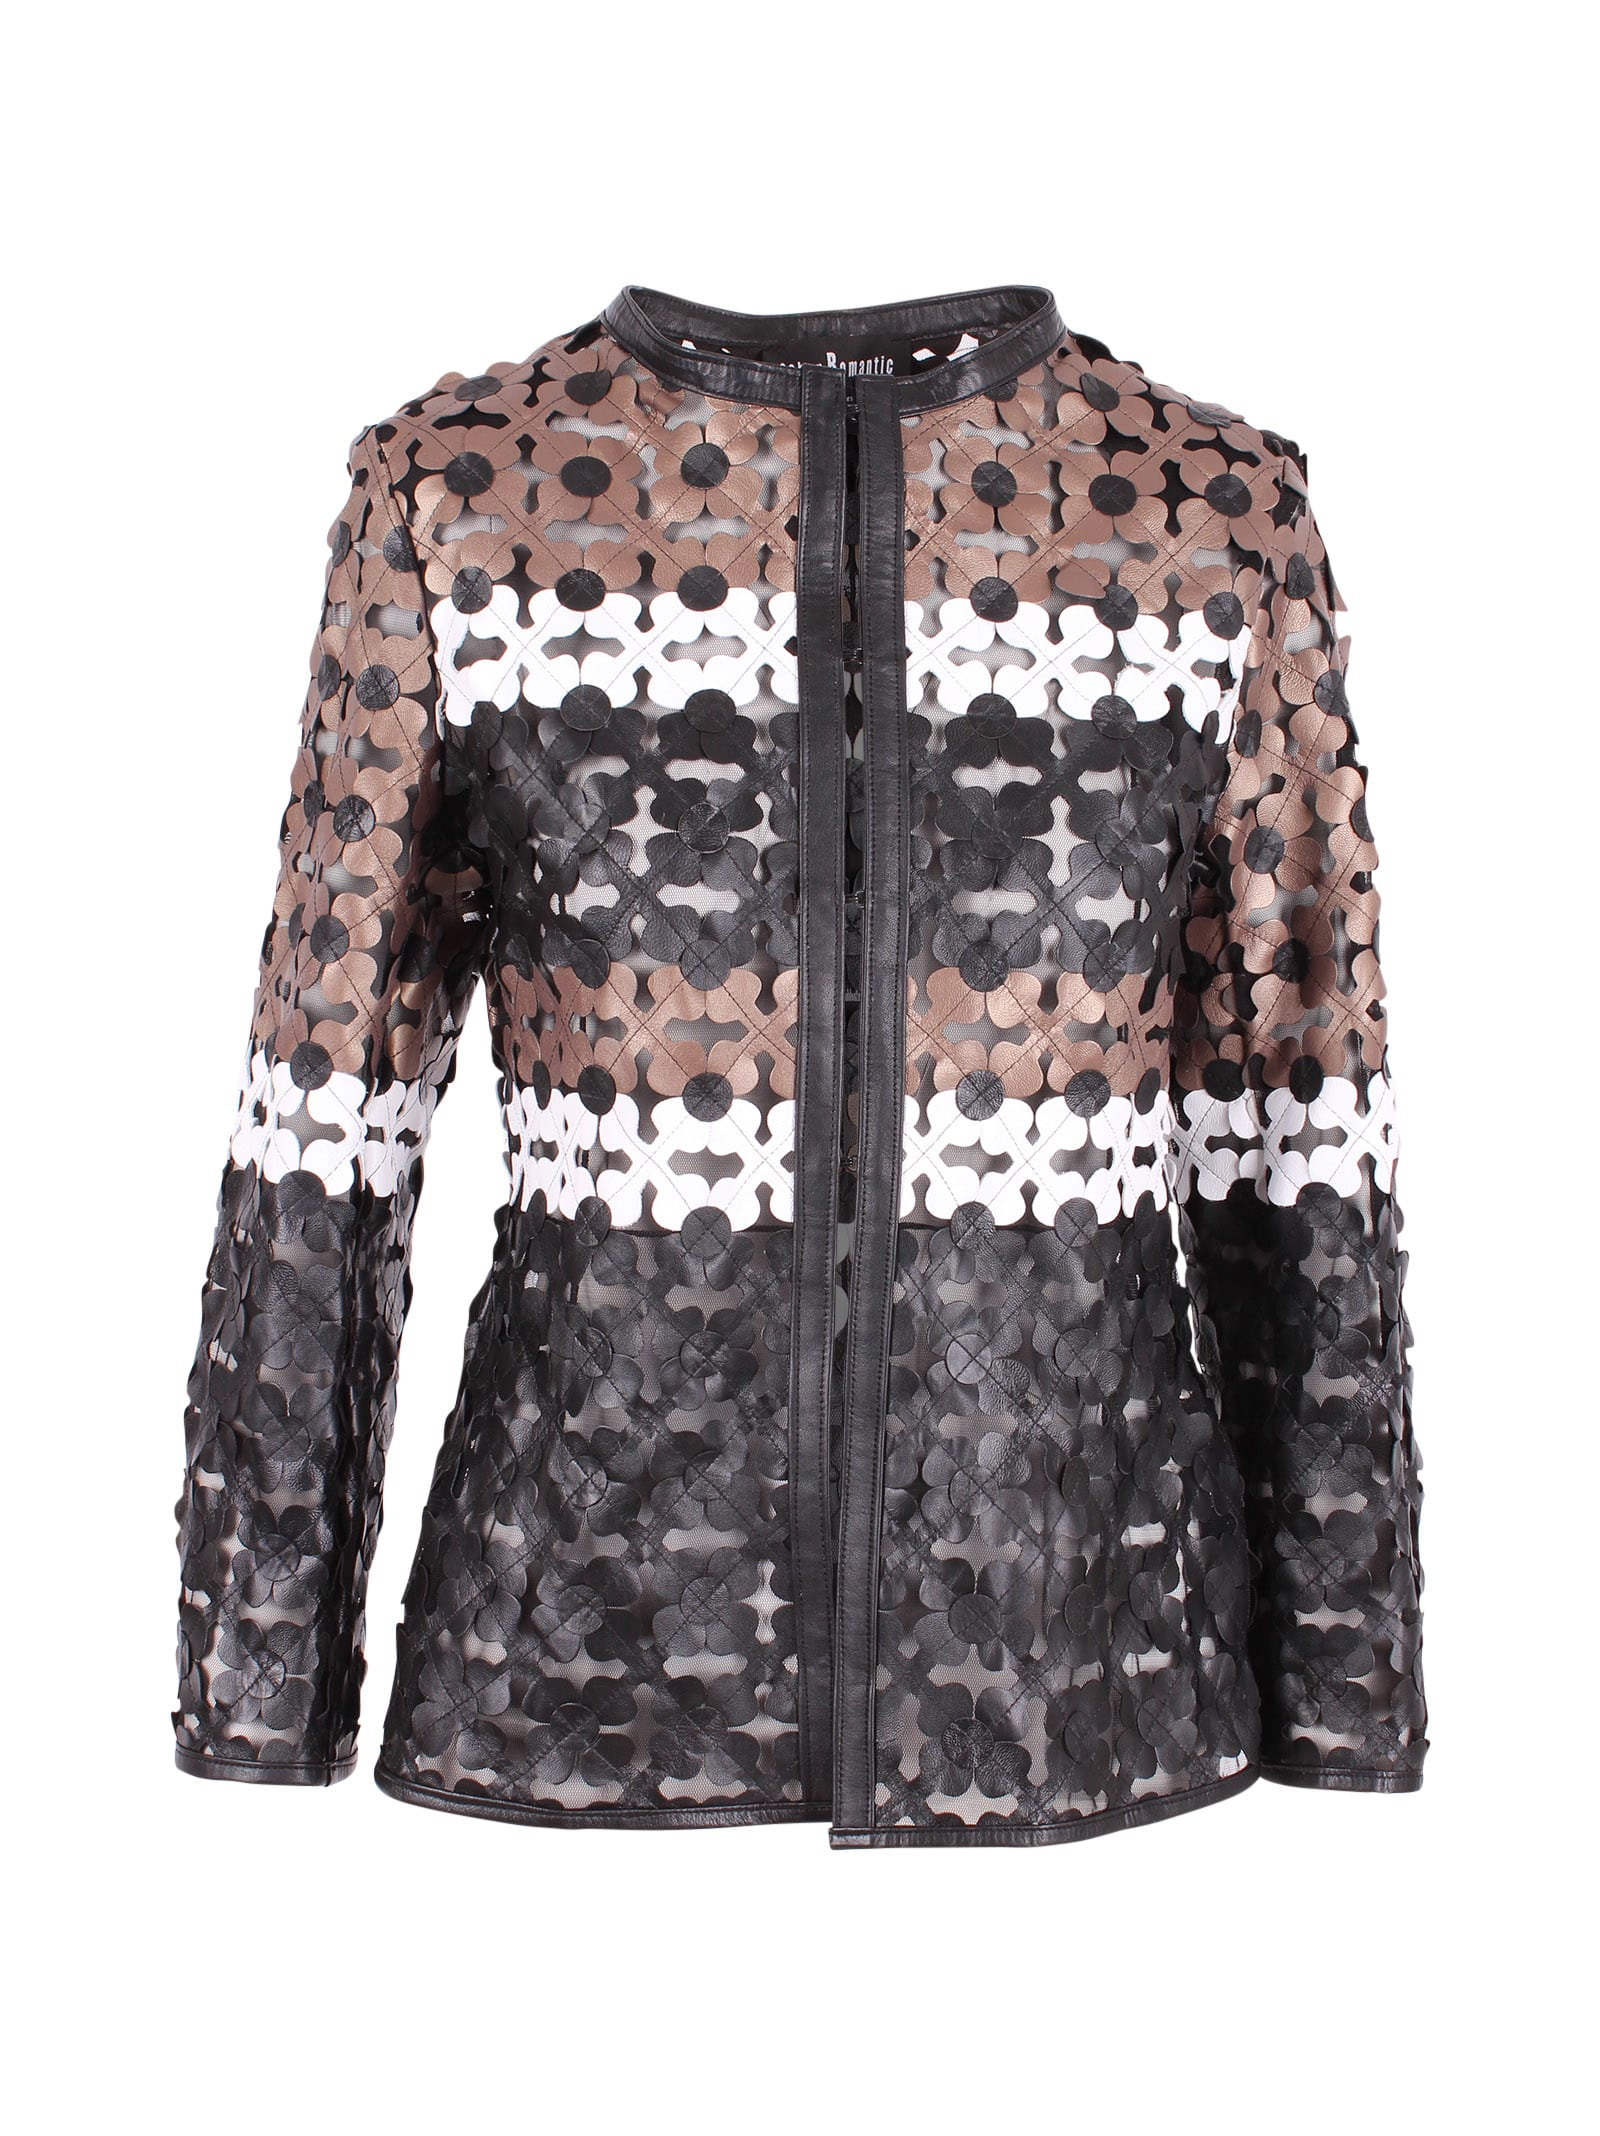 Caban Romantic Leather Jacket